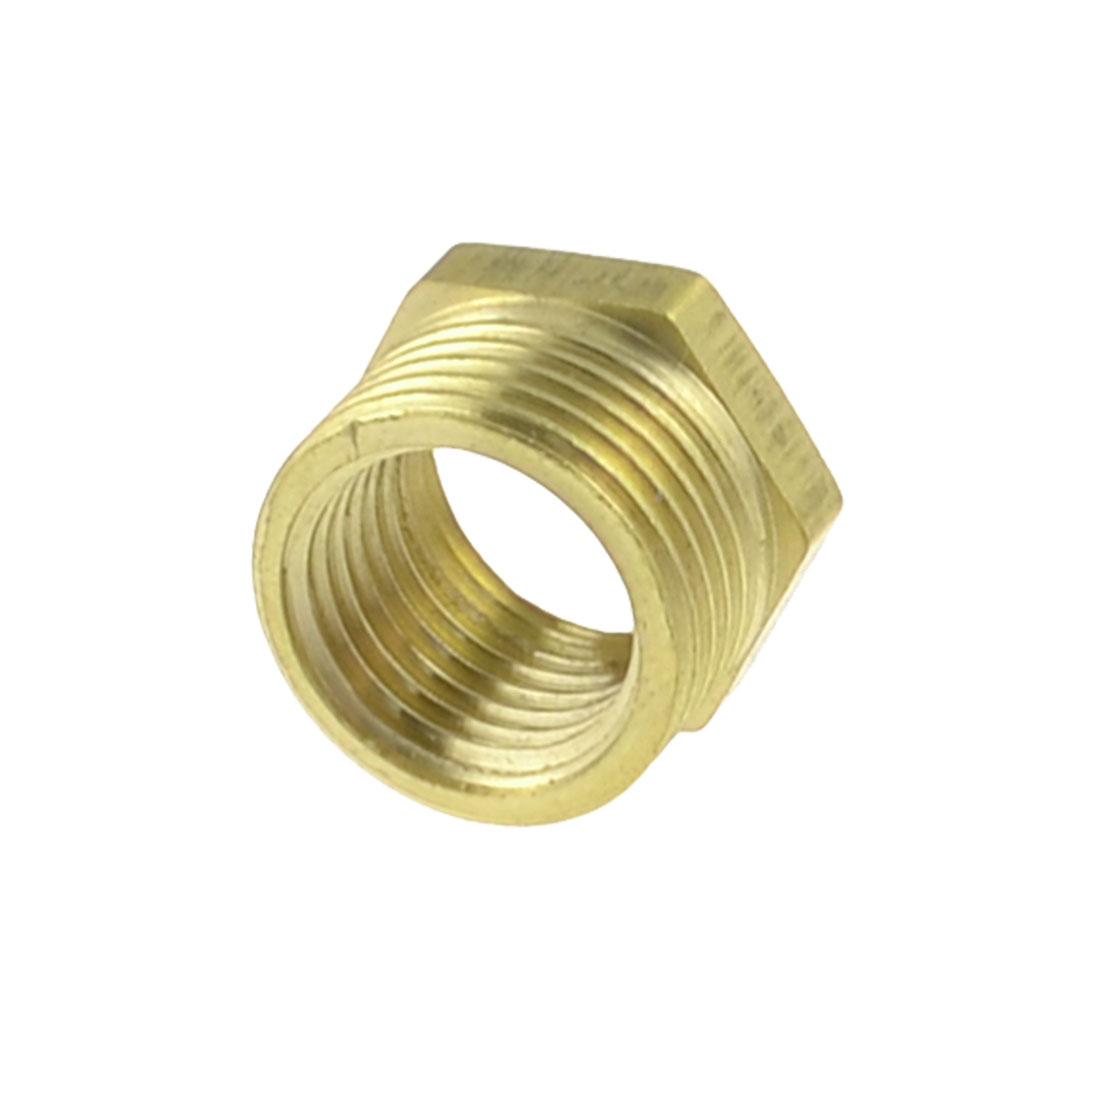 "Brass 3/8"" PT Male to 1/4"" PT Female Thread Hex Bushing Pneumatic Quick Coupler"